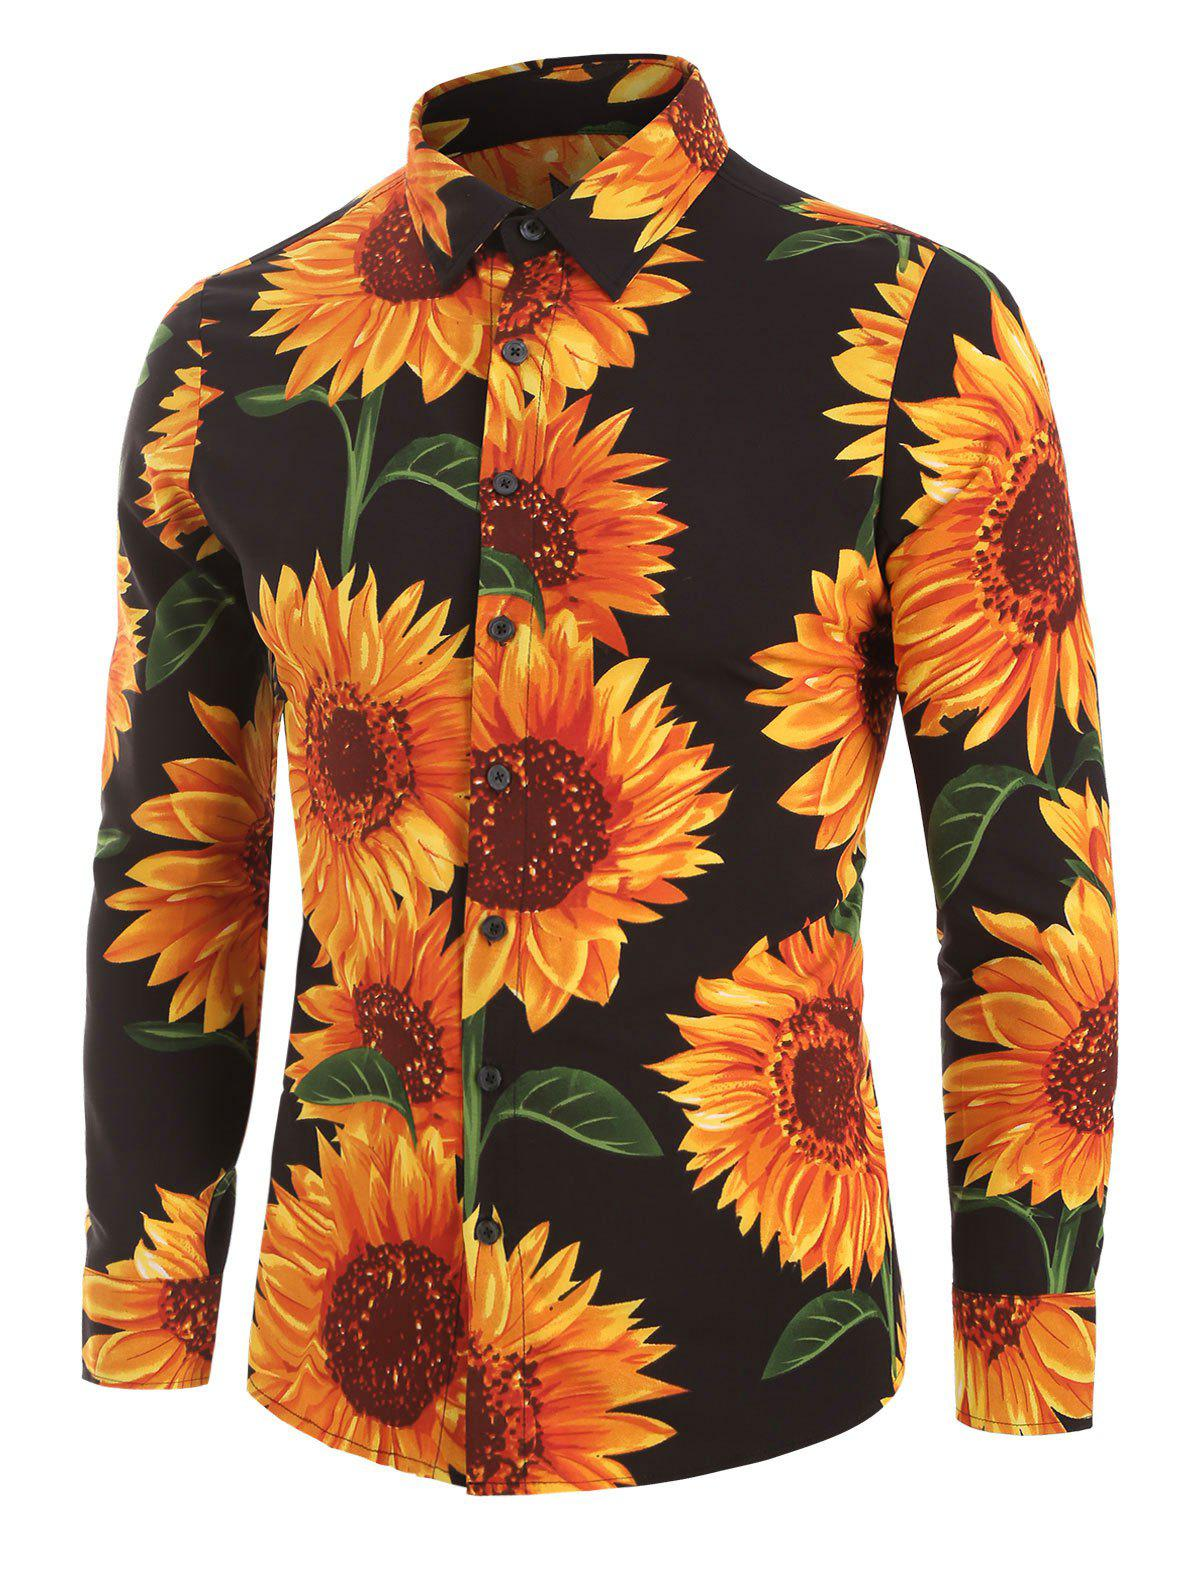 Sunflower Print Long Sleeve Button Up Shirt - BLACK 3XL